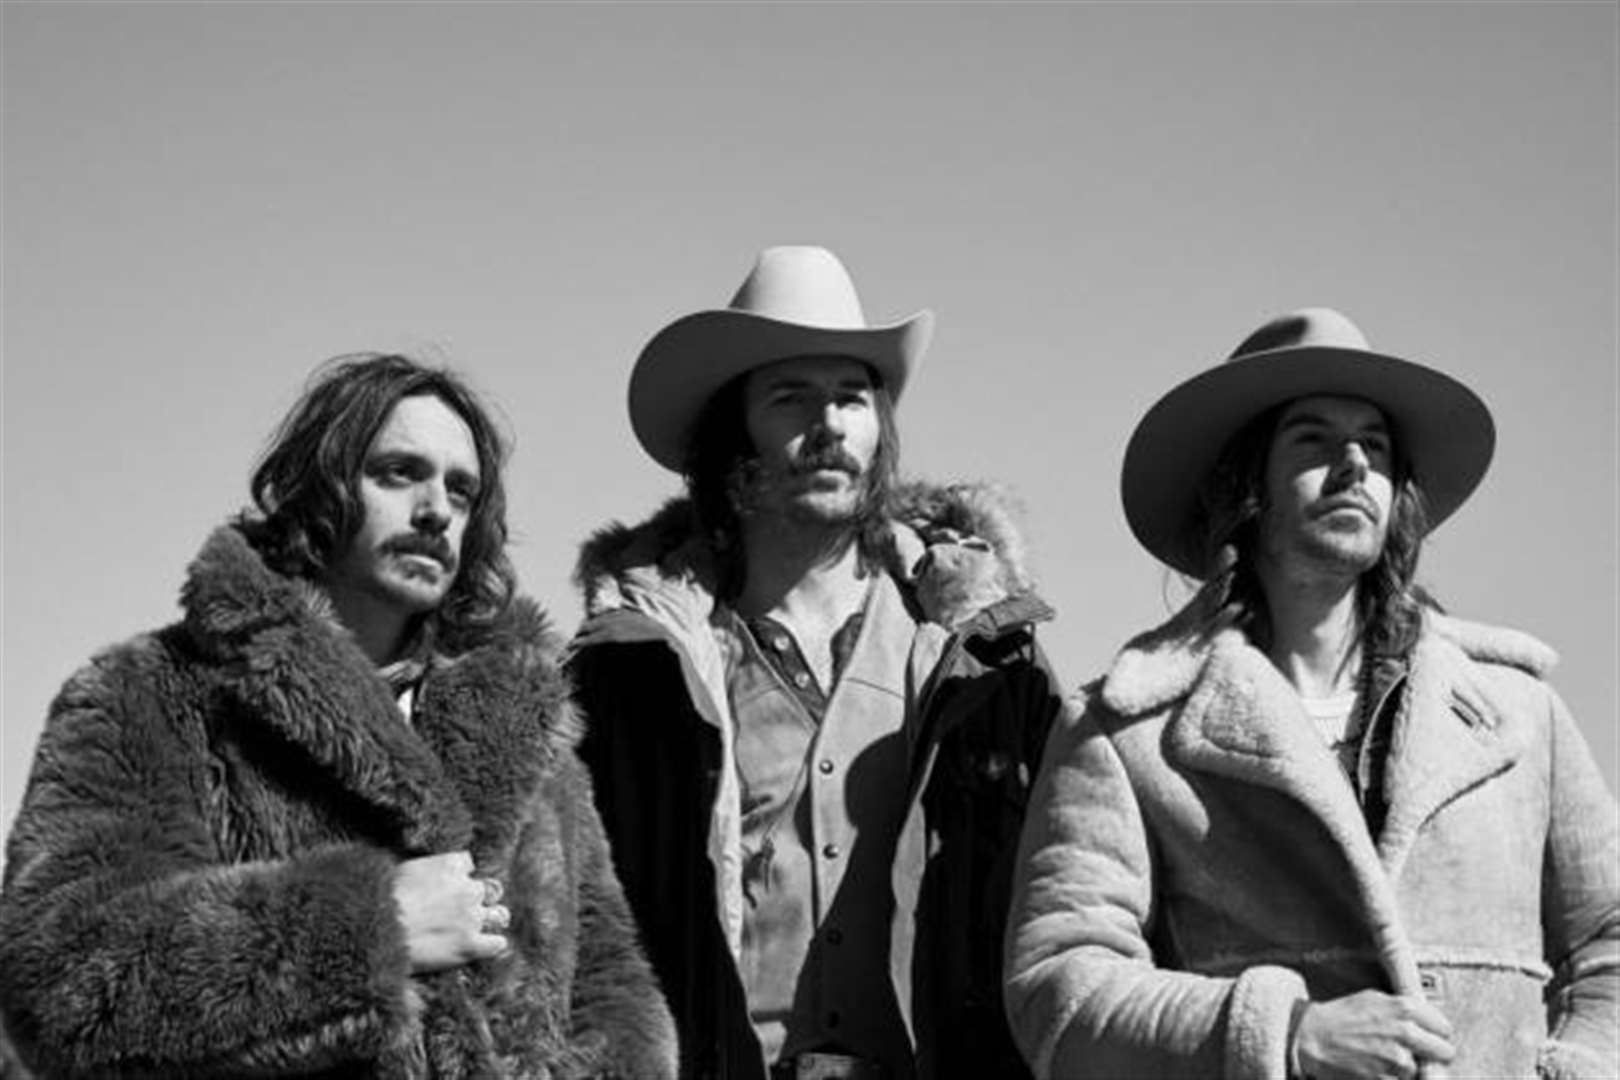 Grammy-nominated country band Midland to play in Cambridge next week